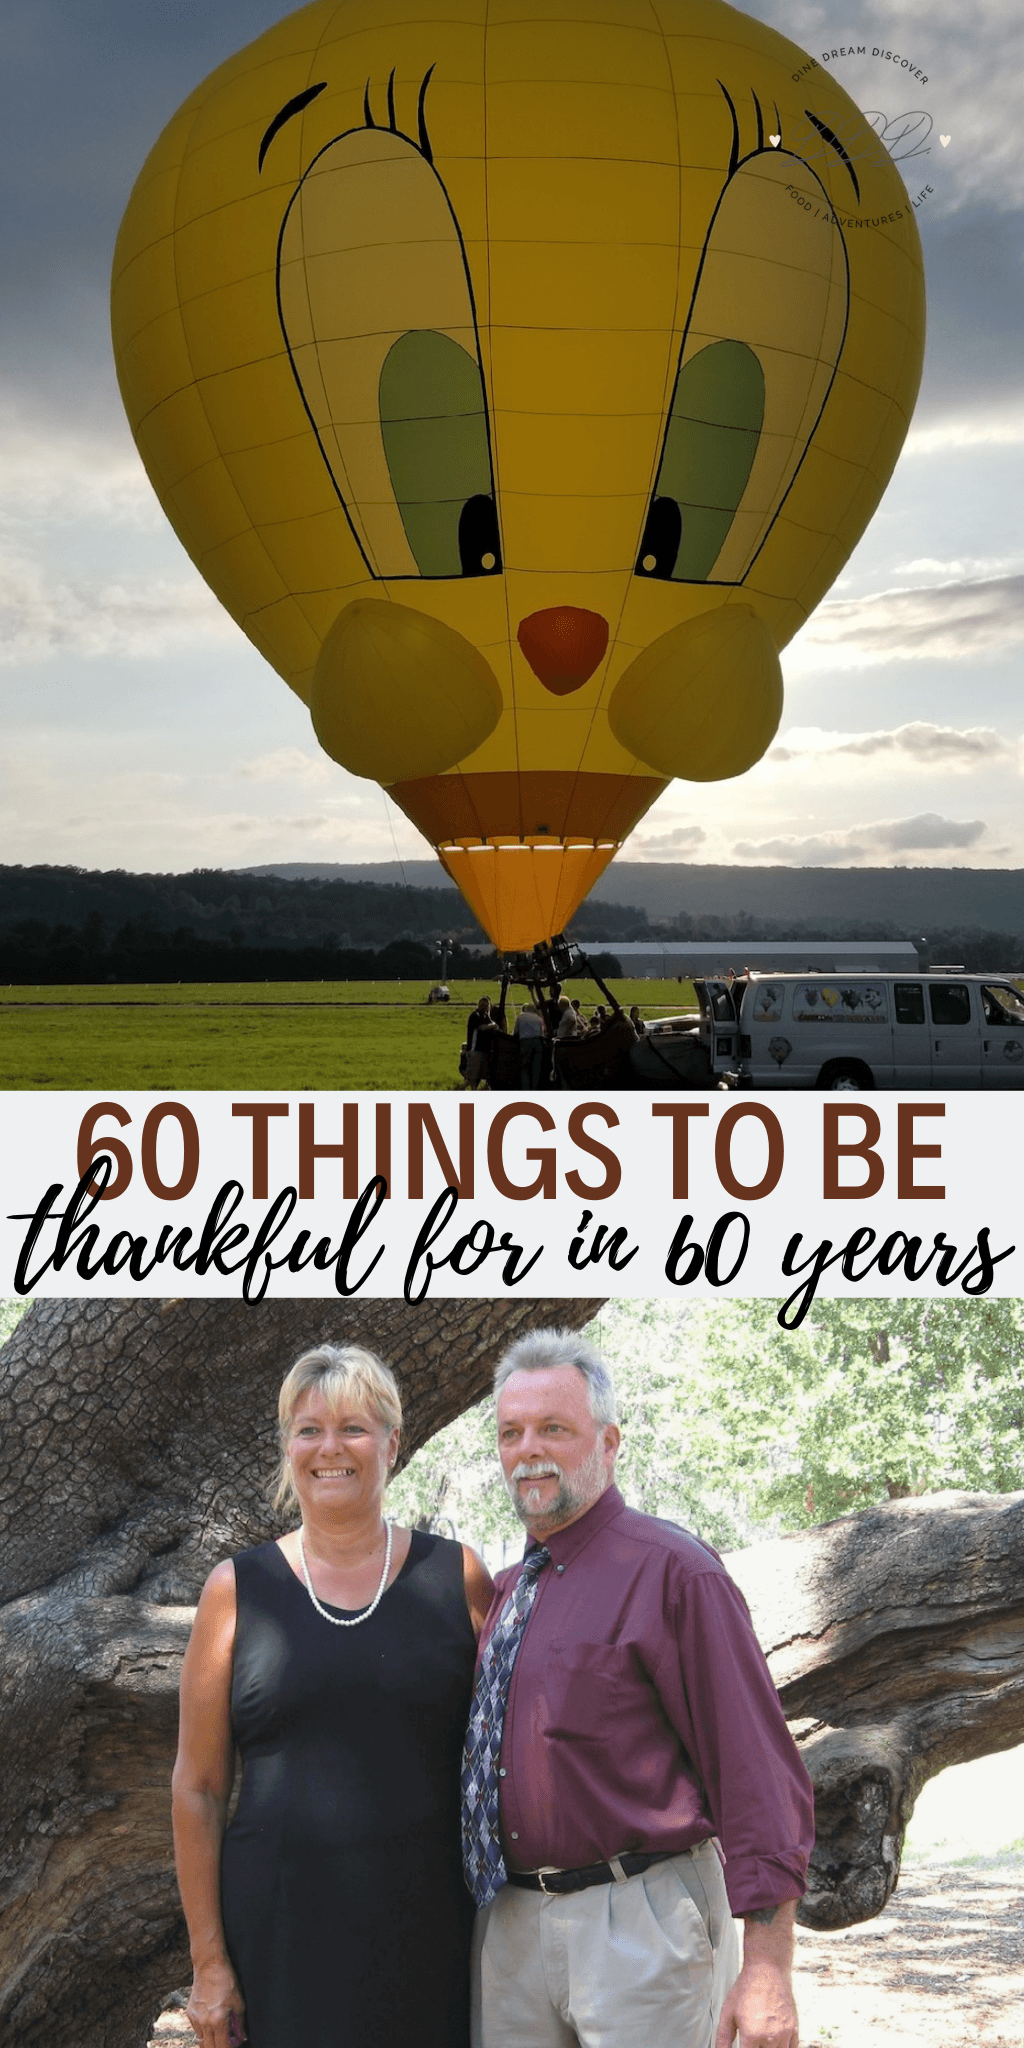 I will be turning 60 in October and I'm not really depressed about it because In 60 years I am thankful for so many things and here is my list!